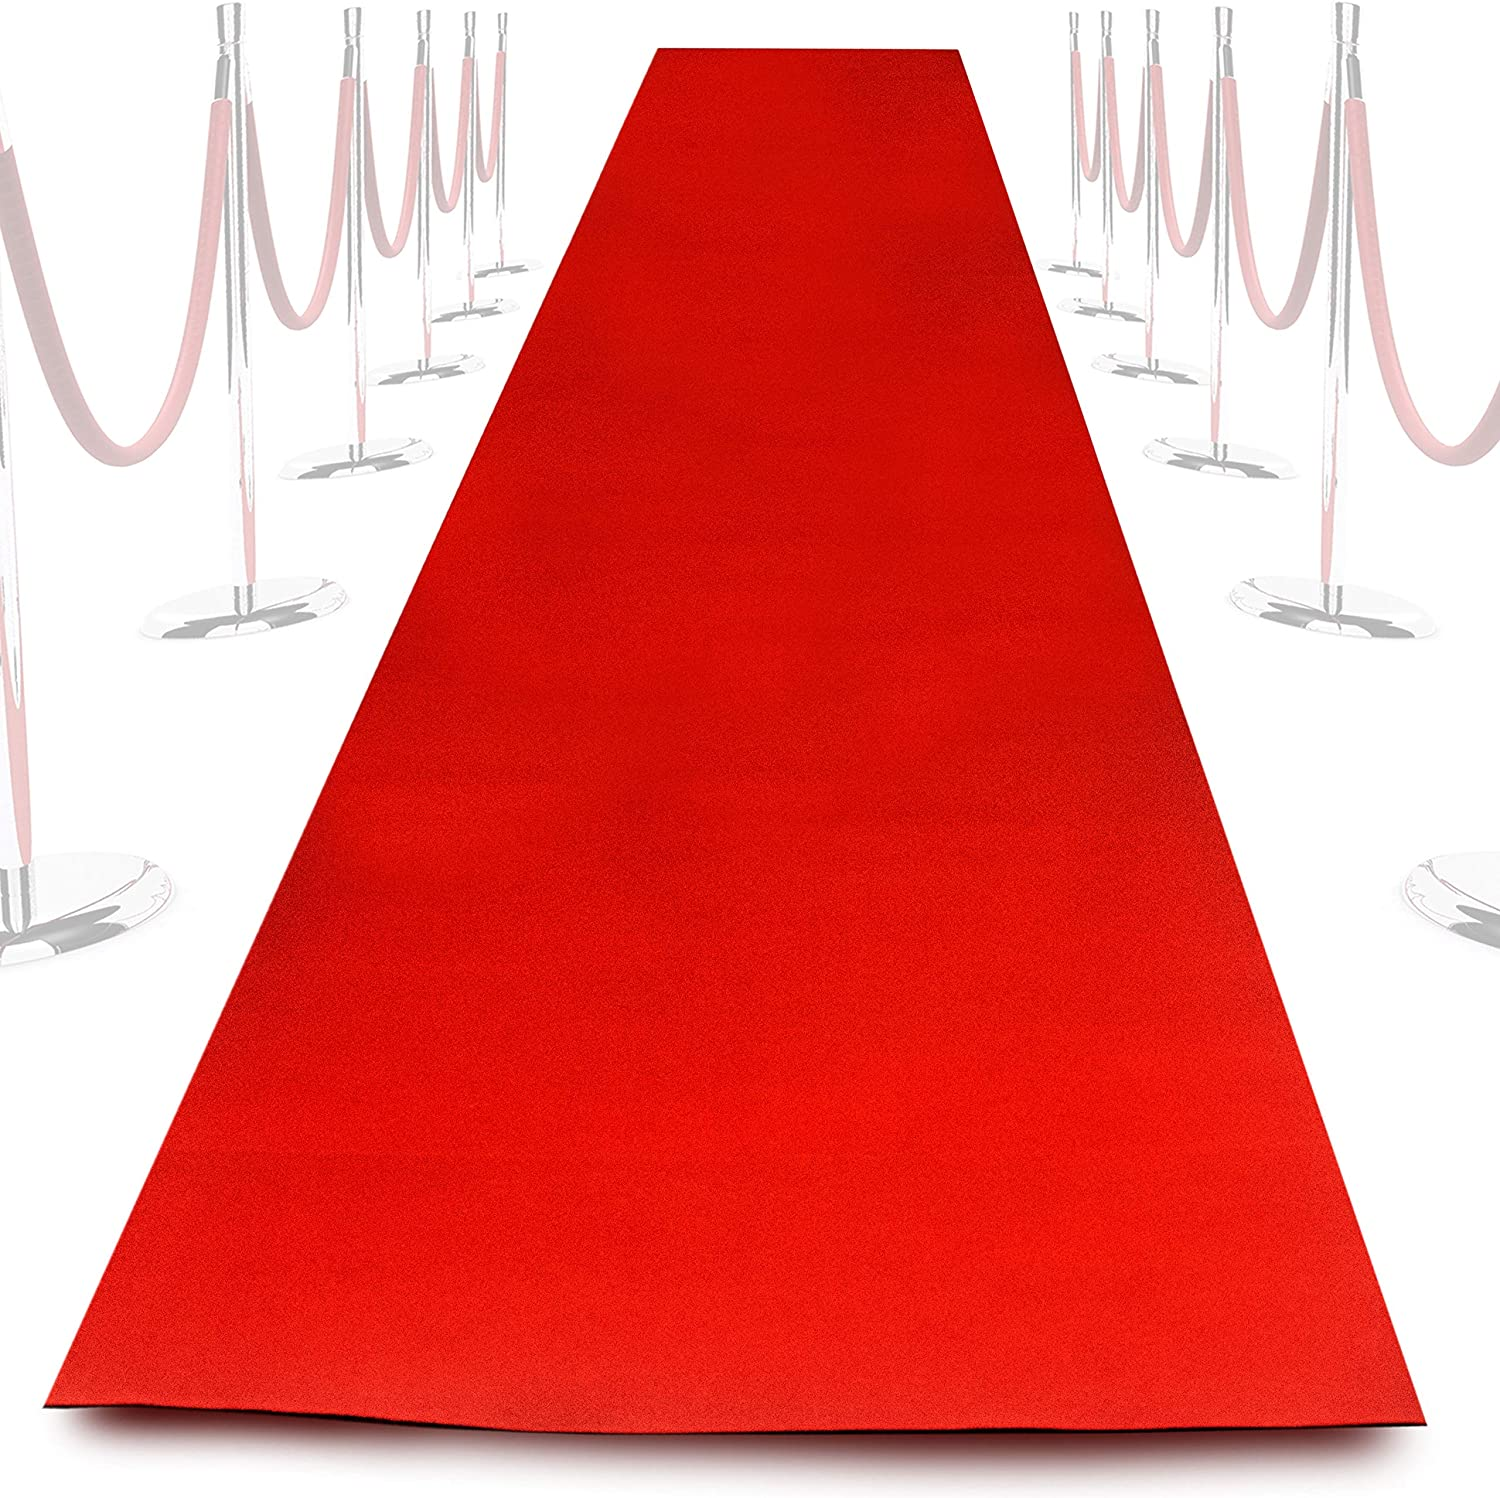 NextClimb Extra-Thick Red Carpet Aisle Runner Rug with Non-Slip Spray Treatment - 0.66m Wide x 5m Long Rug